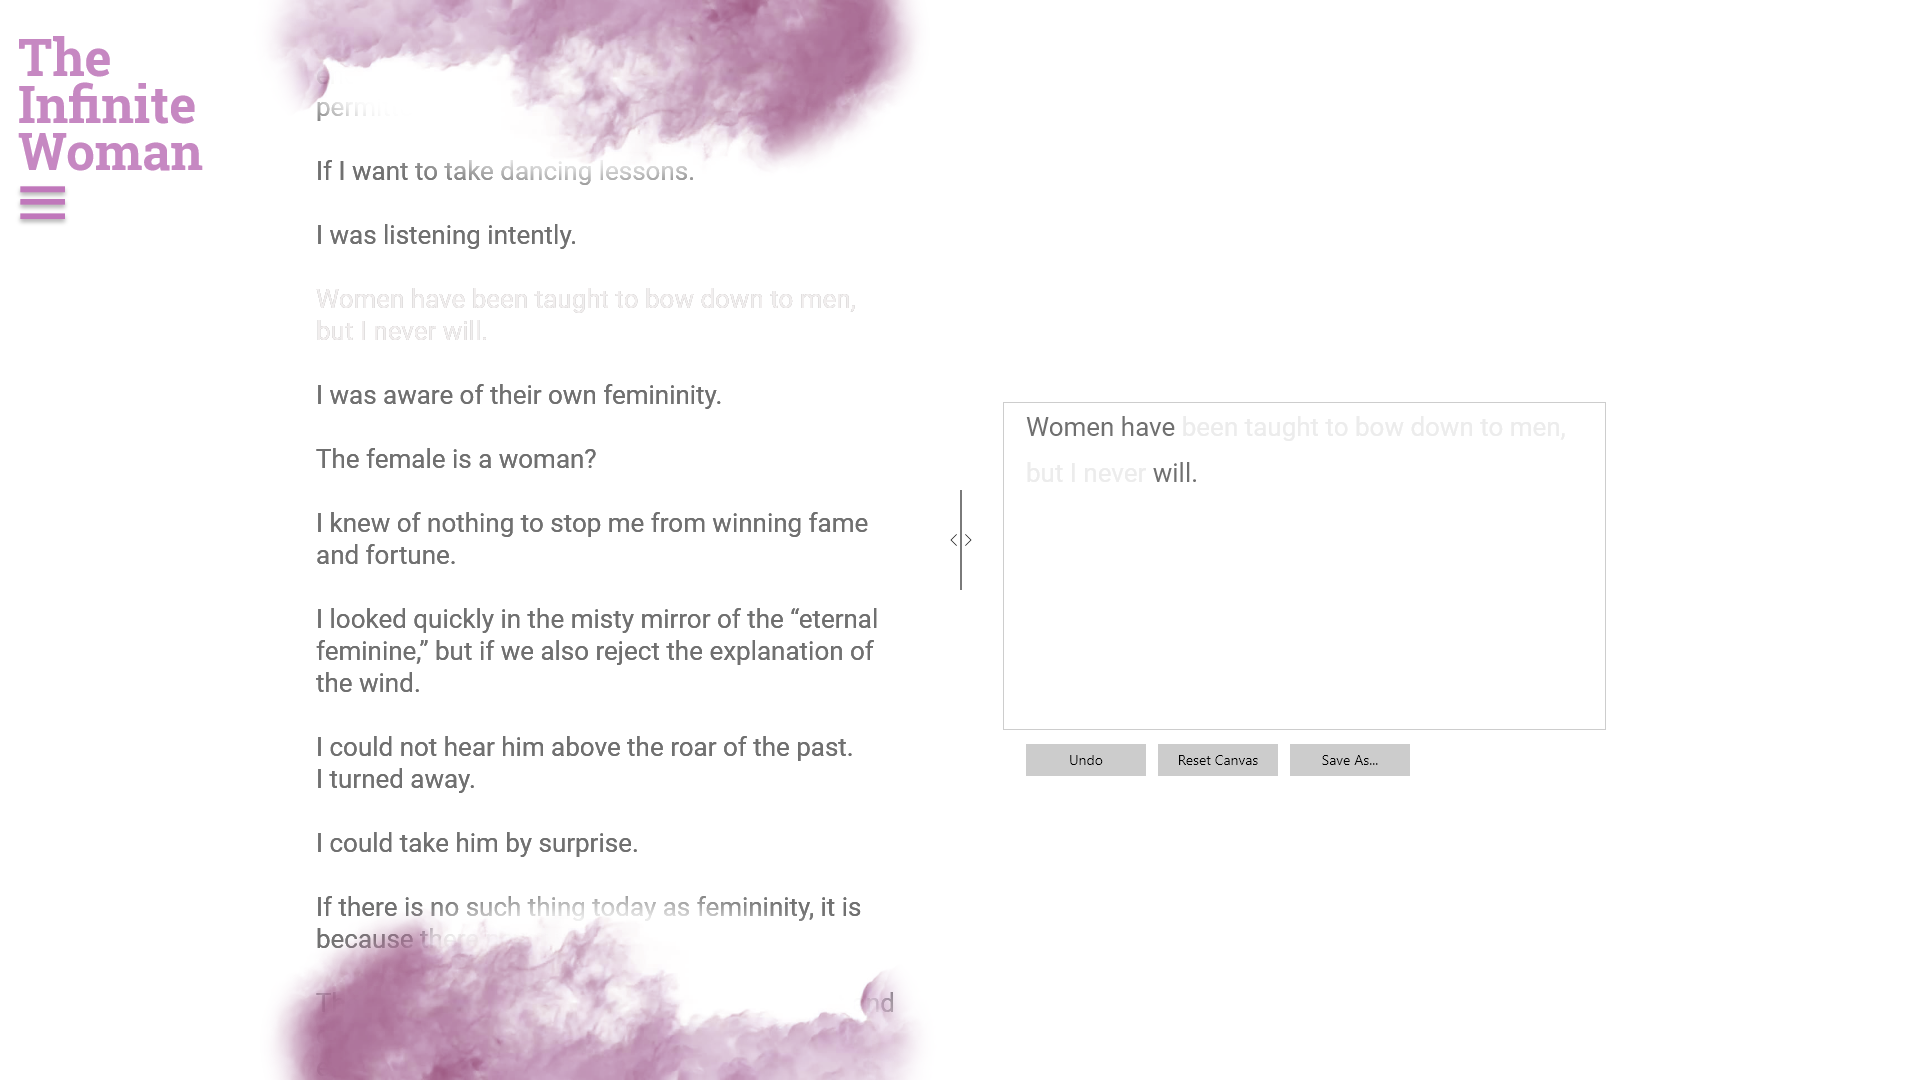 """An image of the web app's prototype, featuring two columns of text and pink fog. The right column contains an erasure poem: the sentence """"Women have been taught to bow down to men, but I never will"""" becomes """"Women have will."""""""